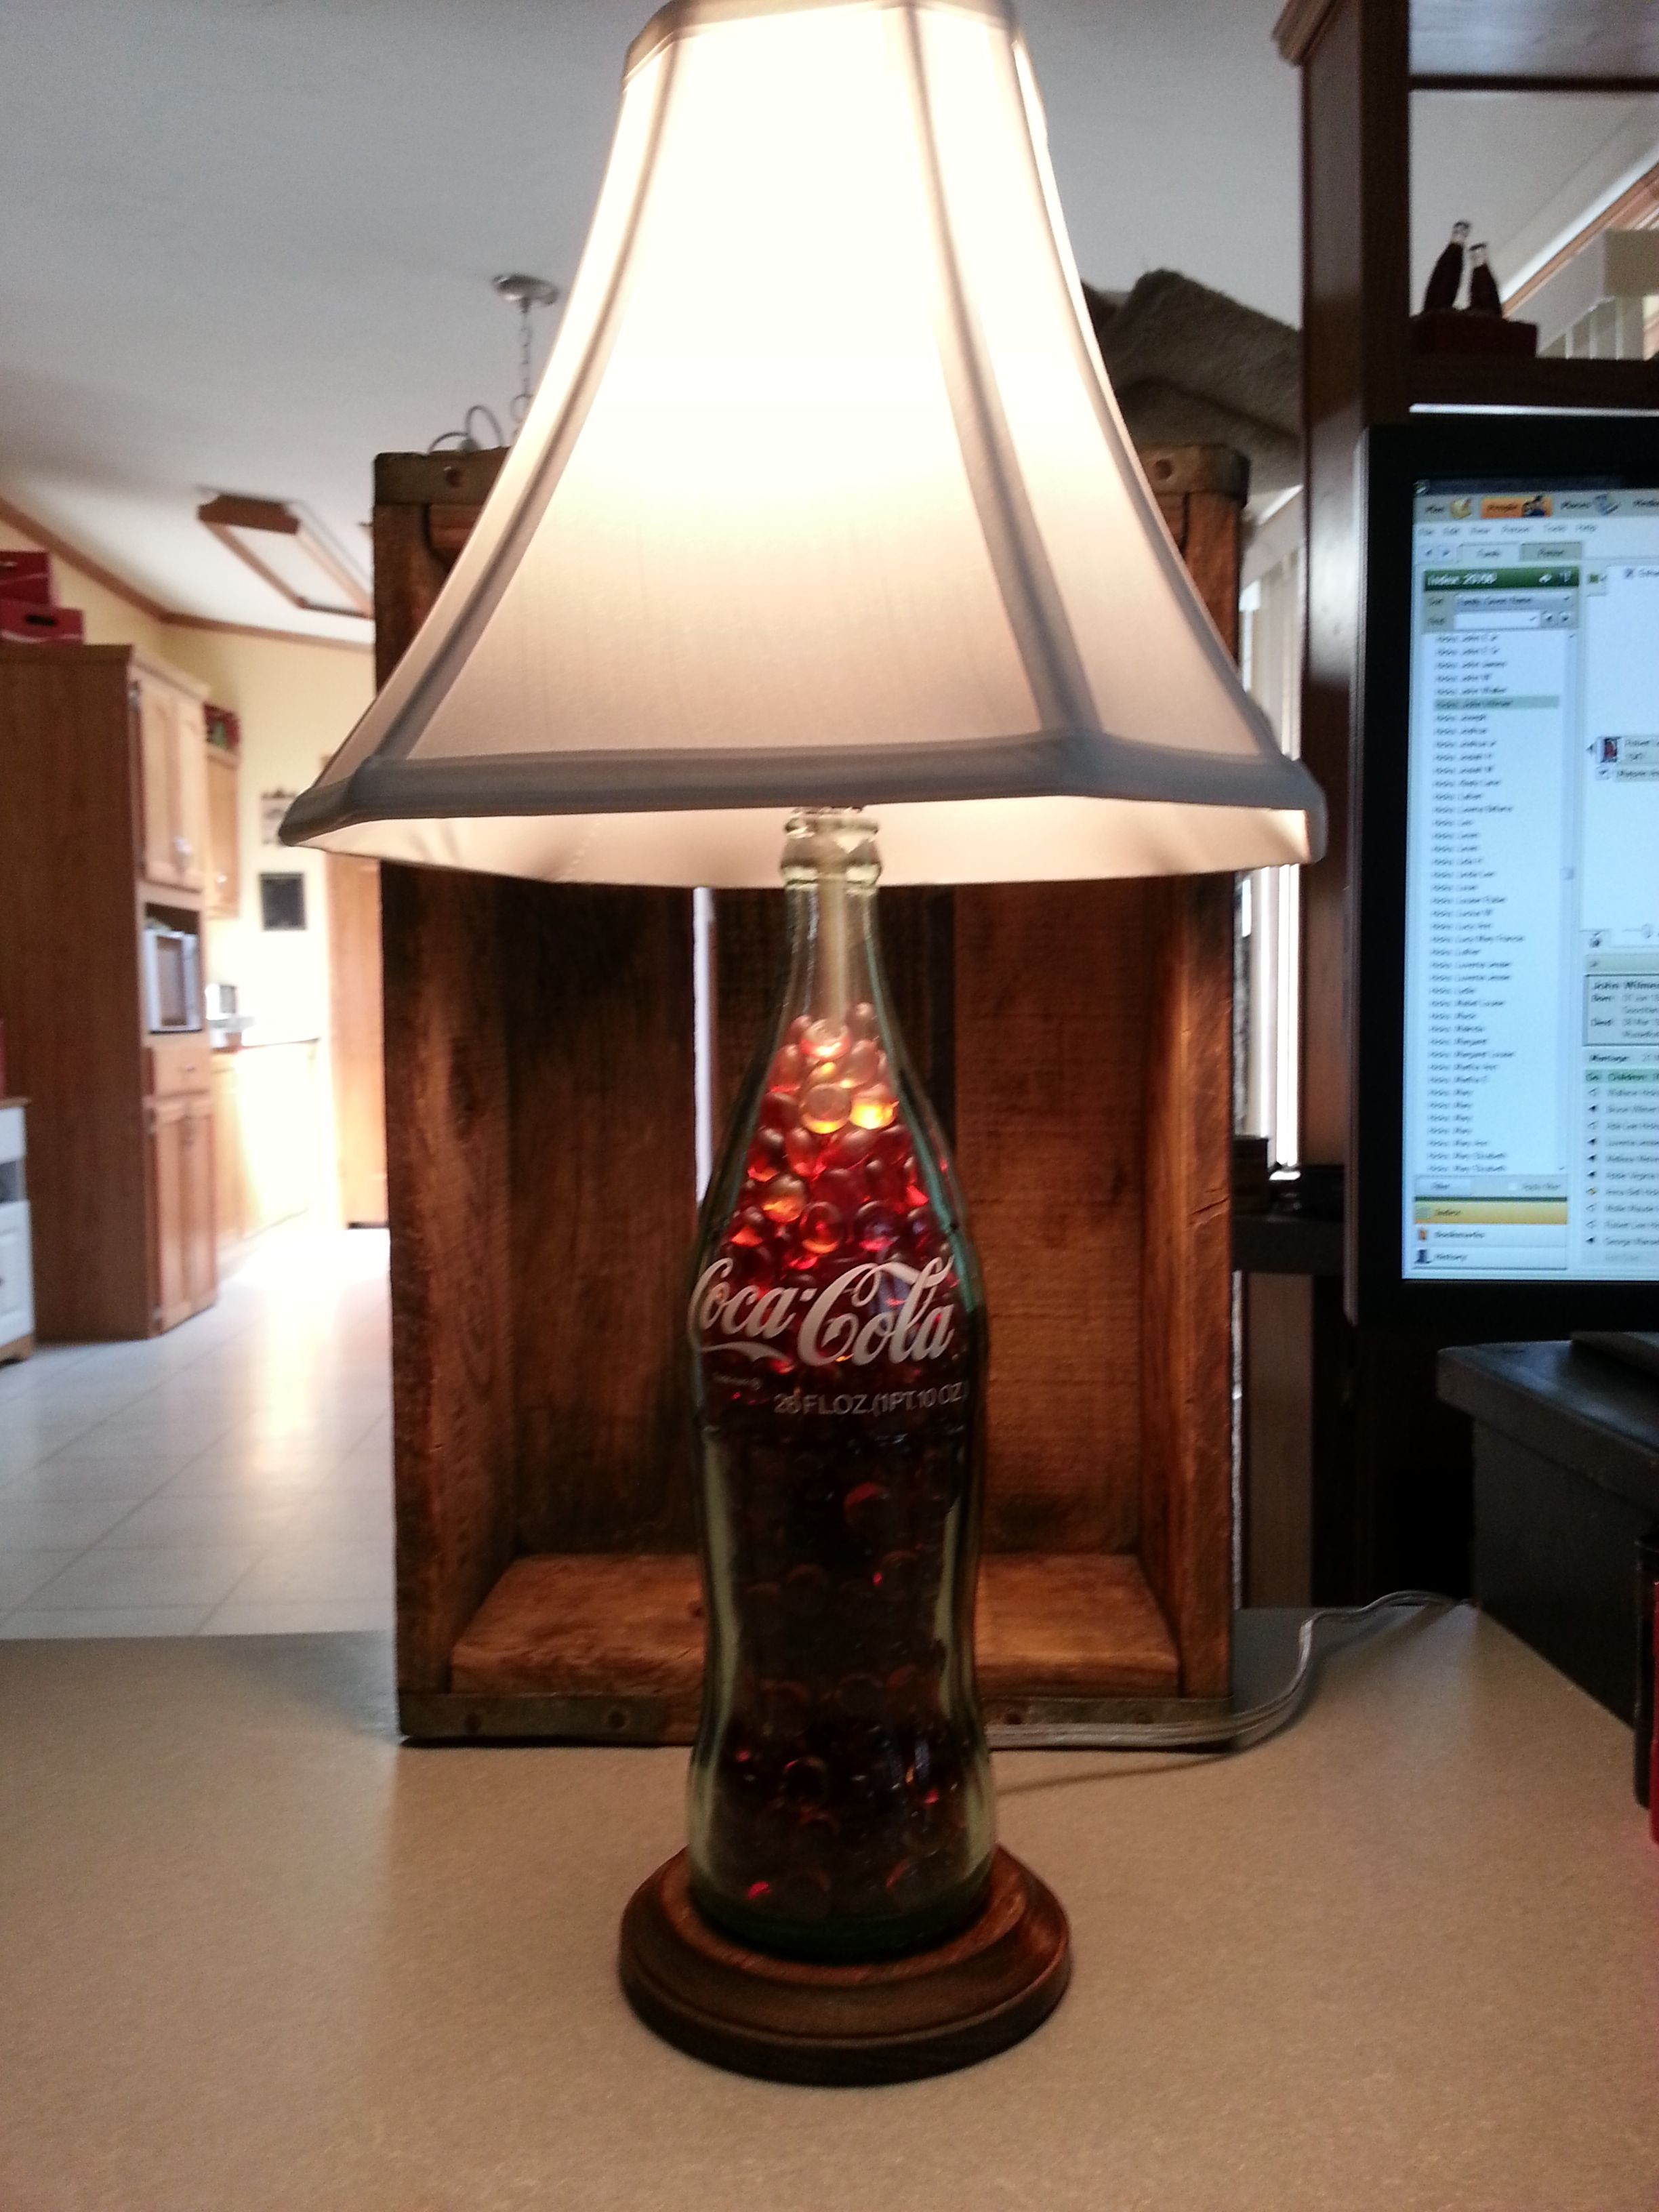 Home Made Lamp Out Of 1960S Coke Bottle